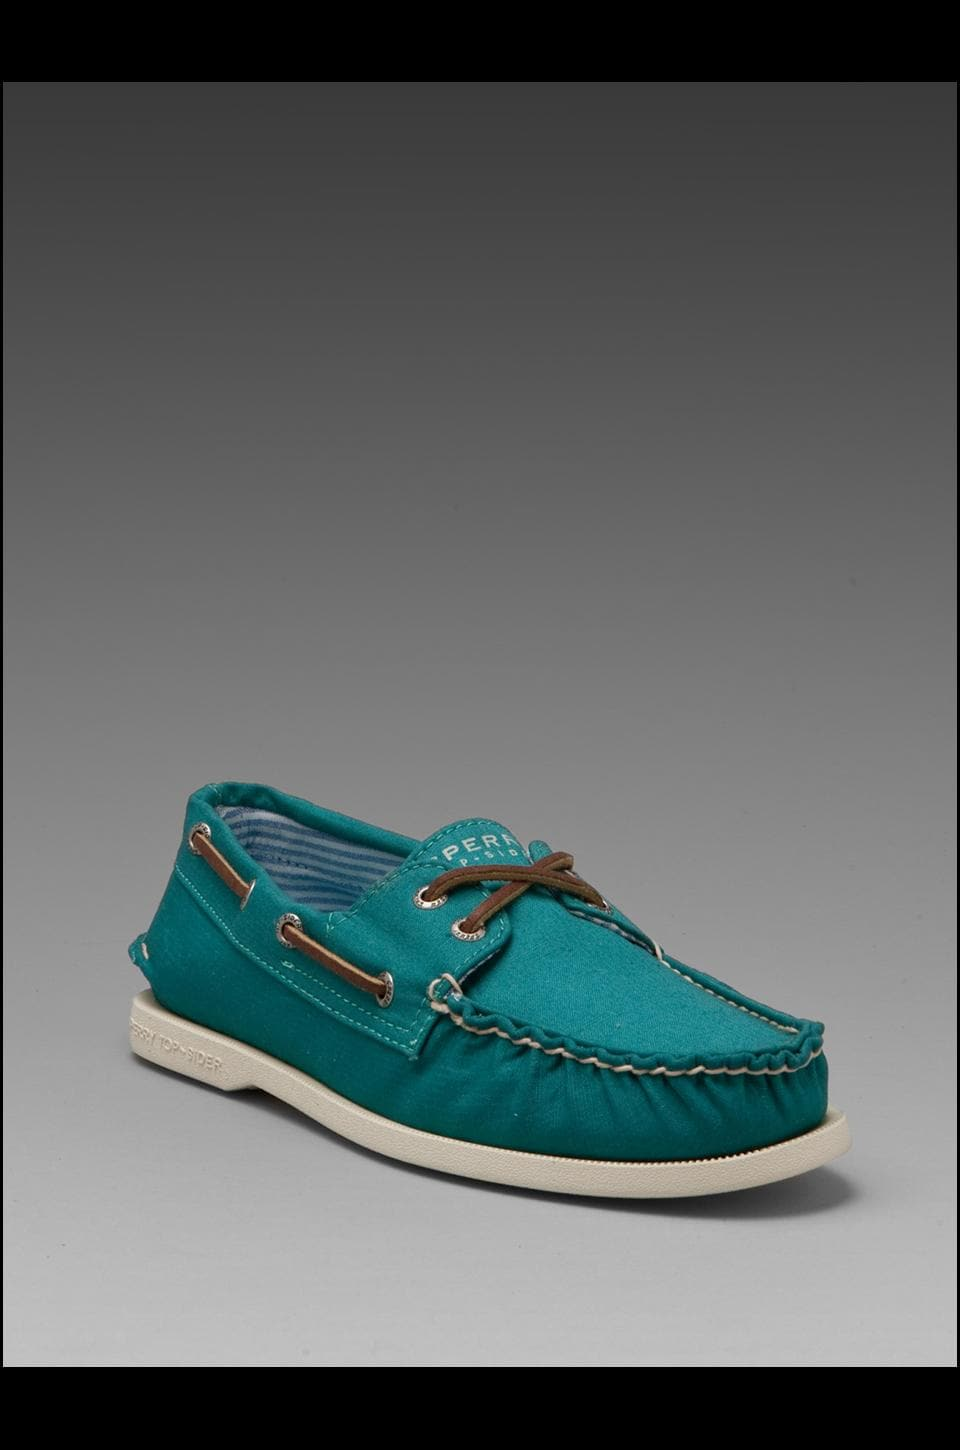 Sperry Top-Sider A/O 2-Eye Canvas in Turquiose